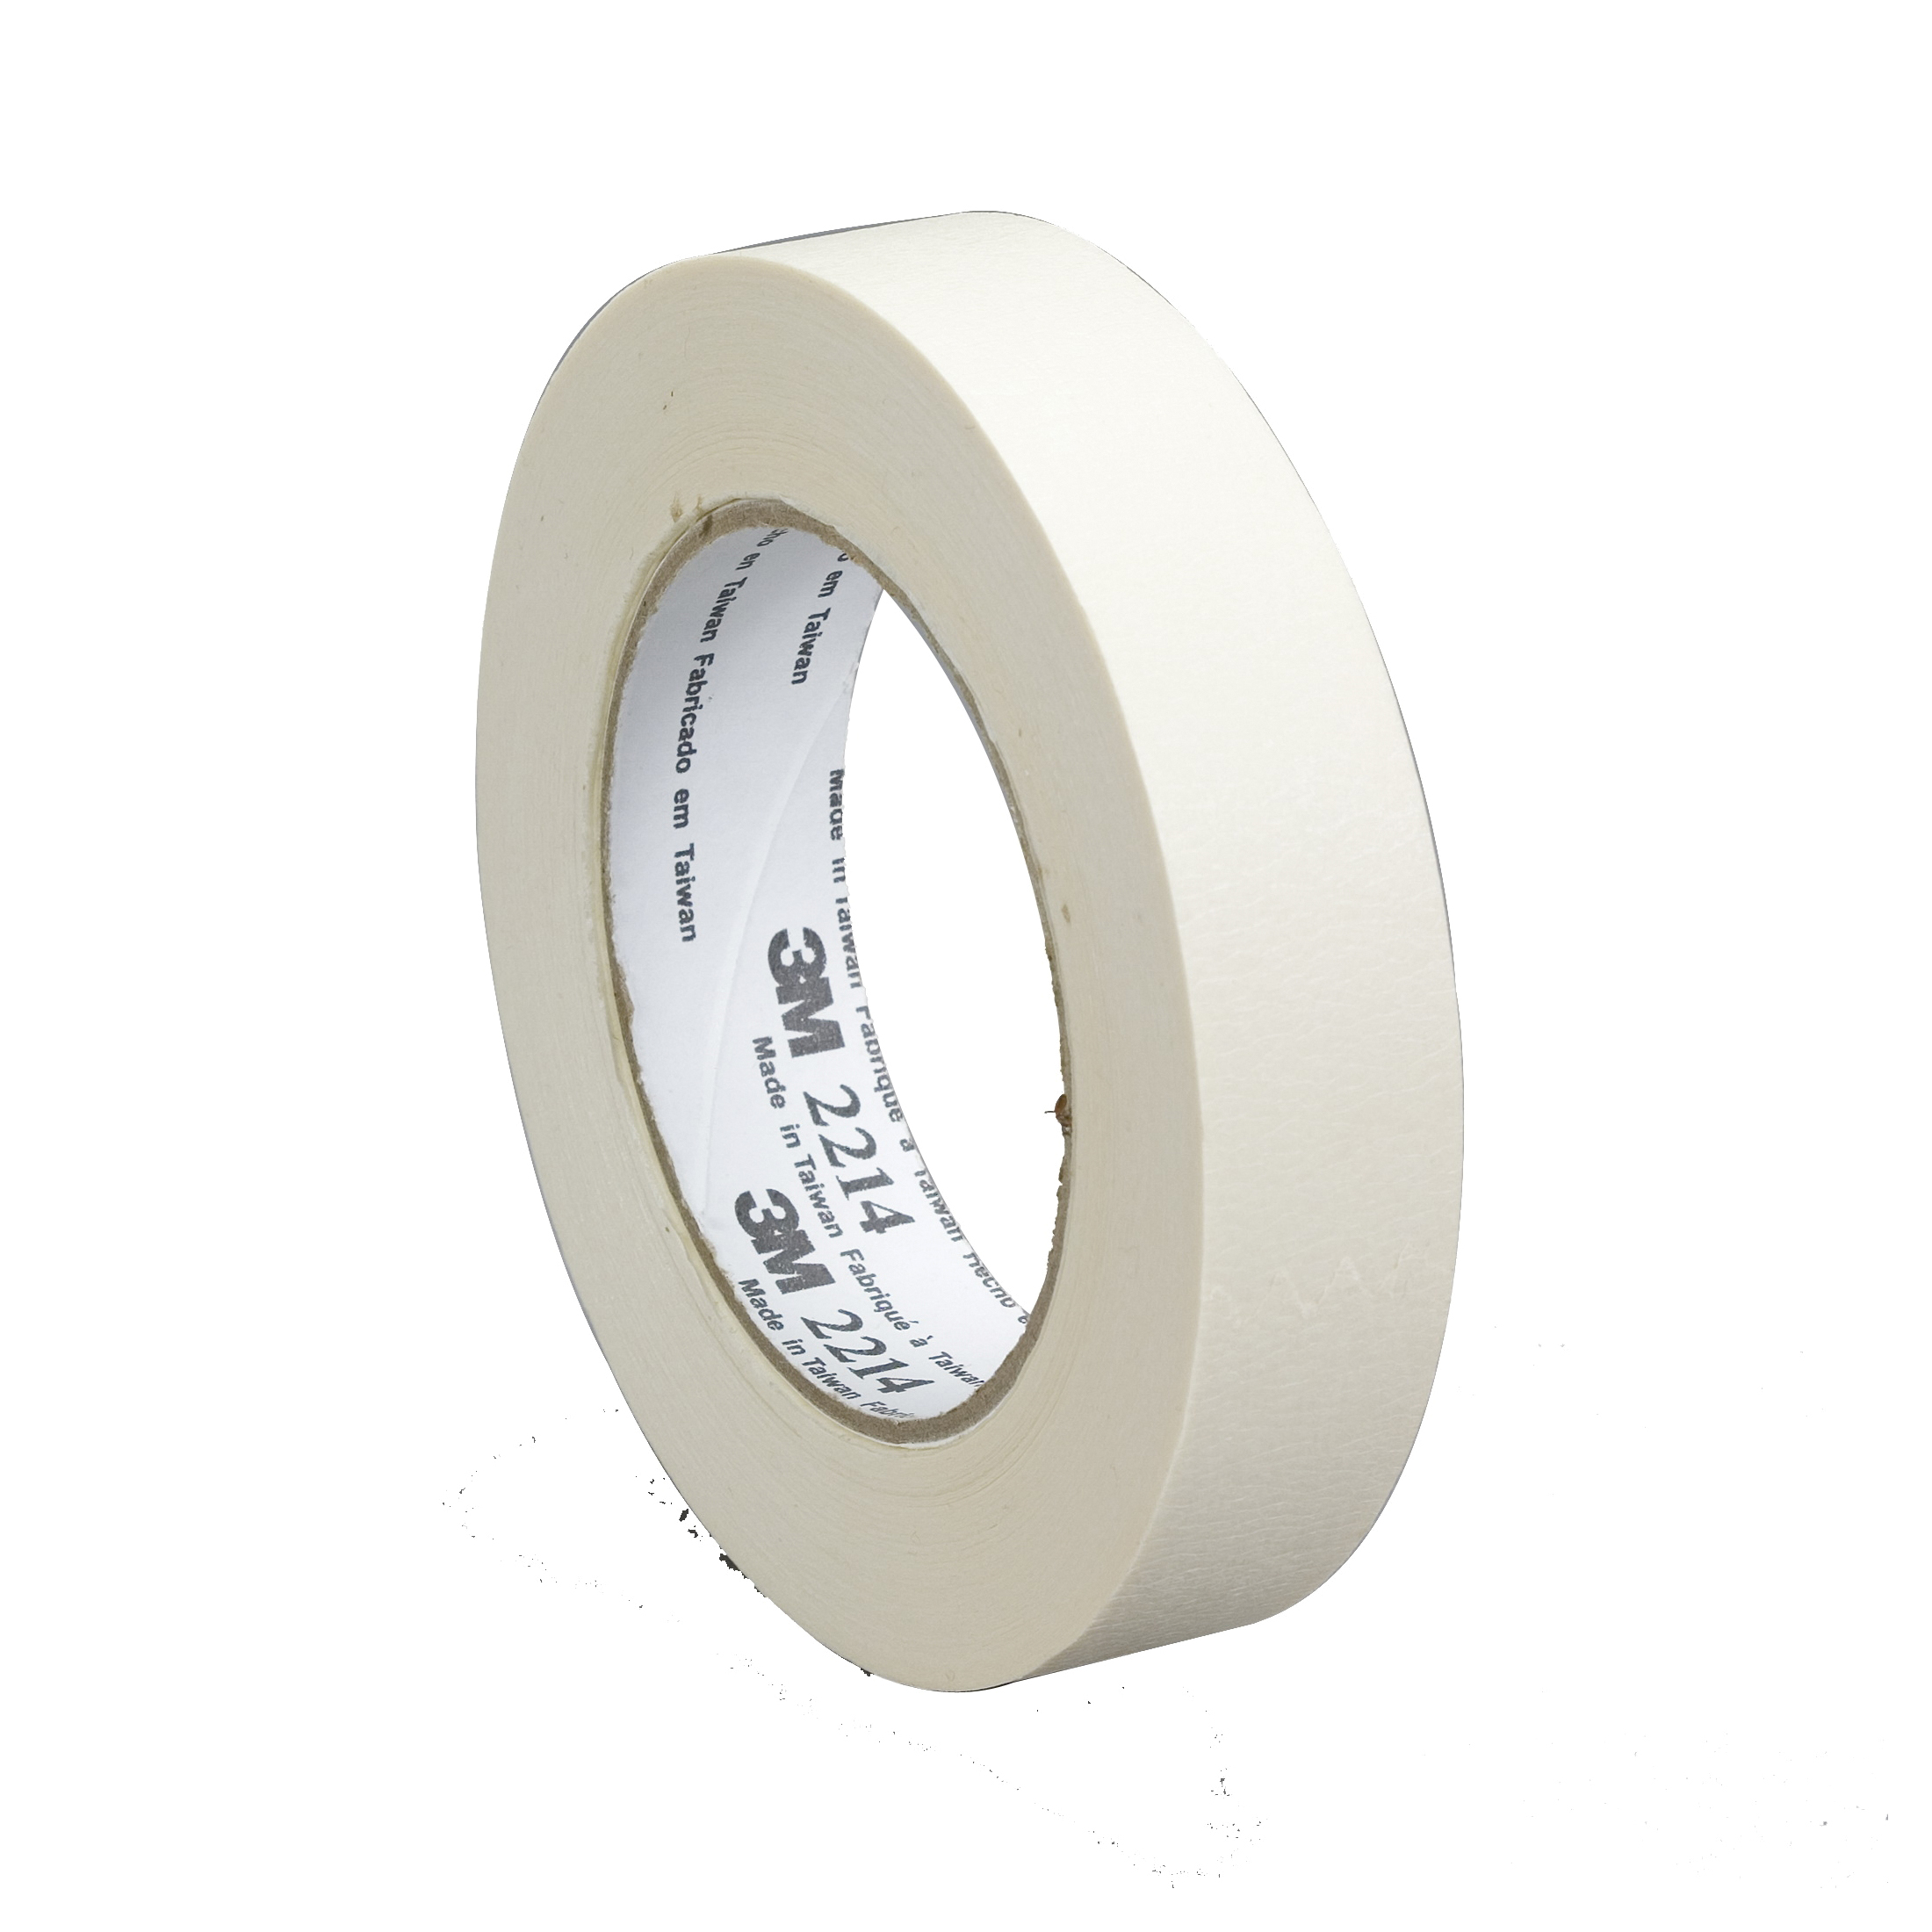 Scotch® 021200-06336 233 High Performance Masking Tape, 55 m L x 24 mm W, 8 mil THK, Paper, Rubber Adhesive, Crepe Paper Backing